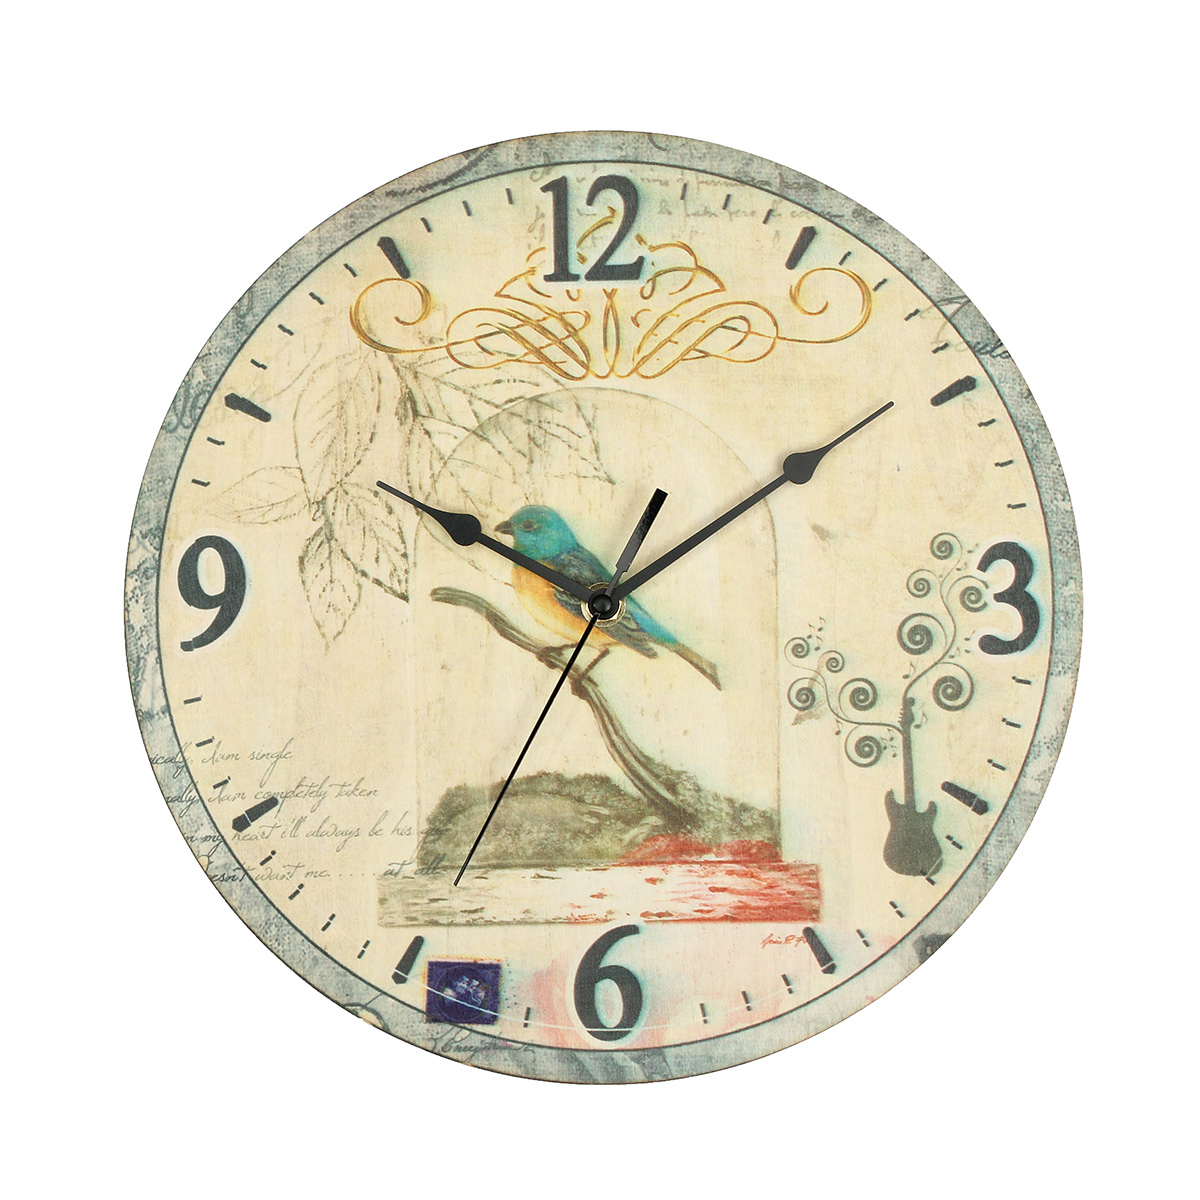 grosse horloge murale bois rustique campagne vintage shabby maison bureau d core ebay. Black Bedroom Furniture Sets. Home Design Ideas